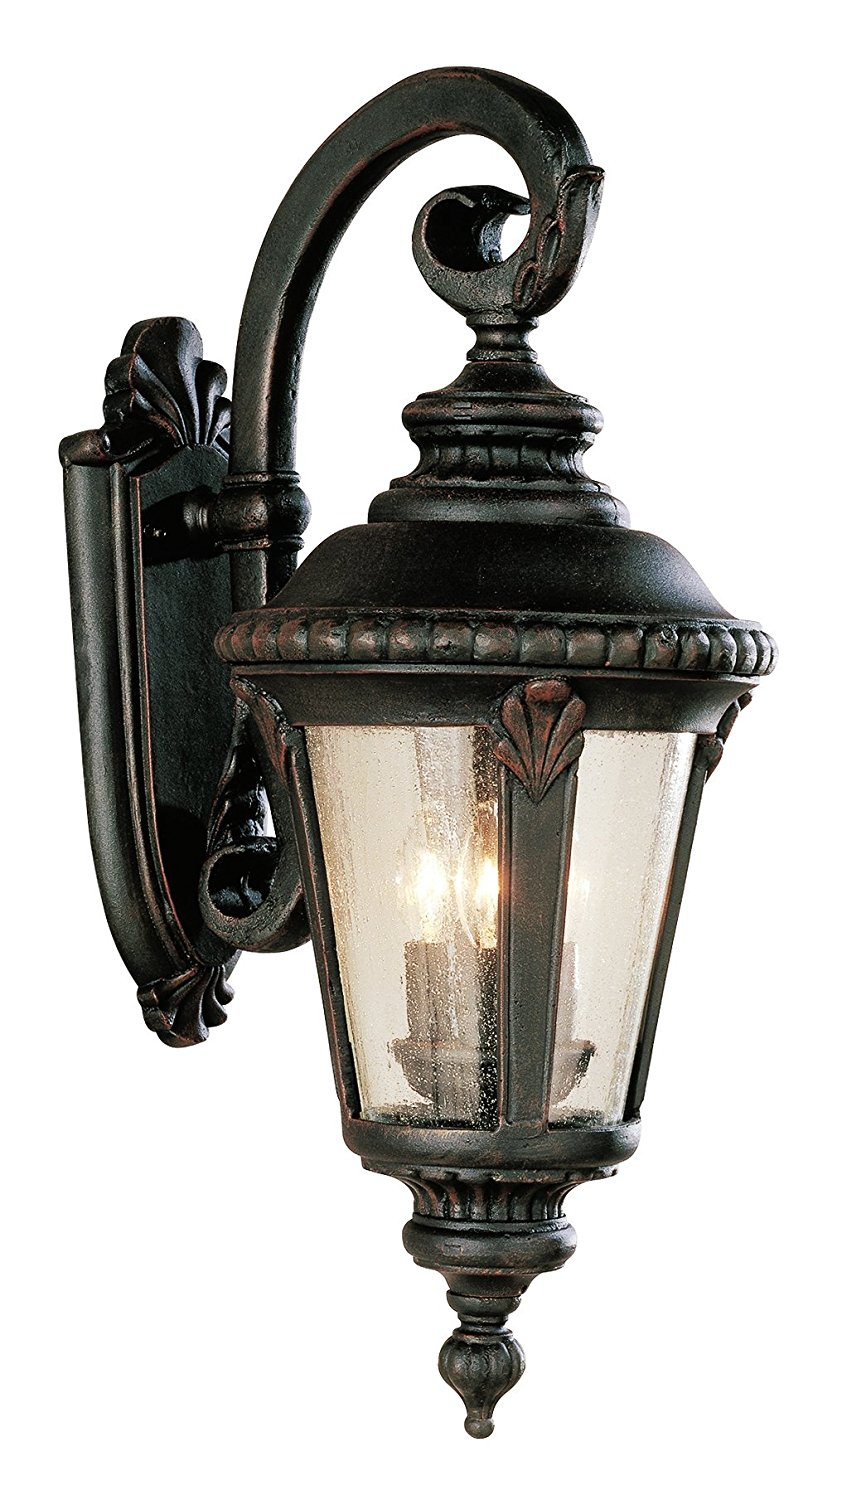 Wall Bracket Light Fixtures : 10 facts about Outdoor wall mount light fixtures Warisan Lighting